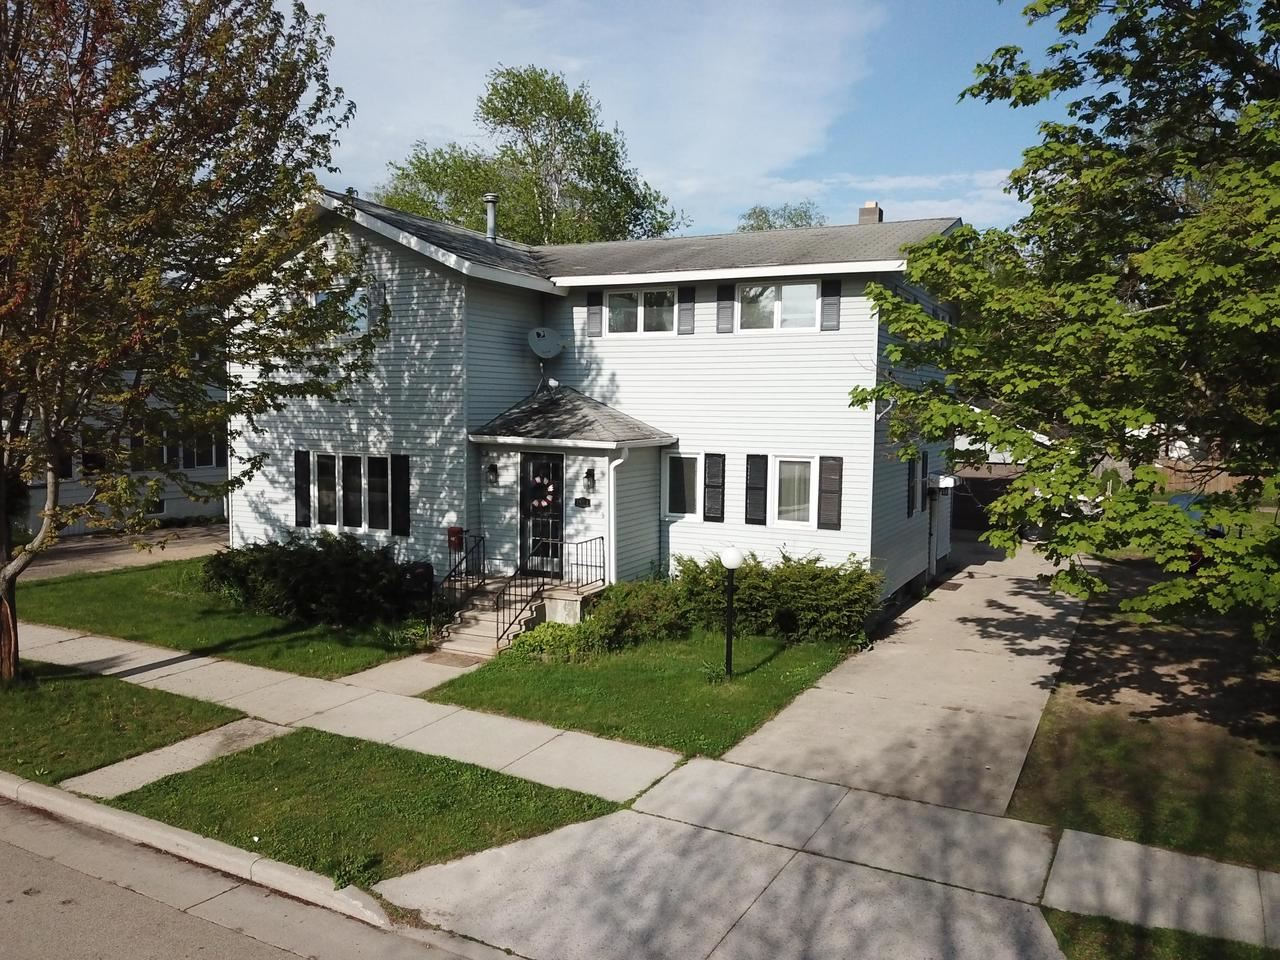 1634 Armstrong, Marinette, WI 54143 - MLS#: 1690657